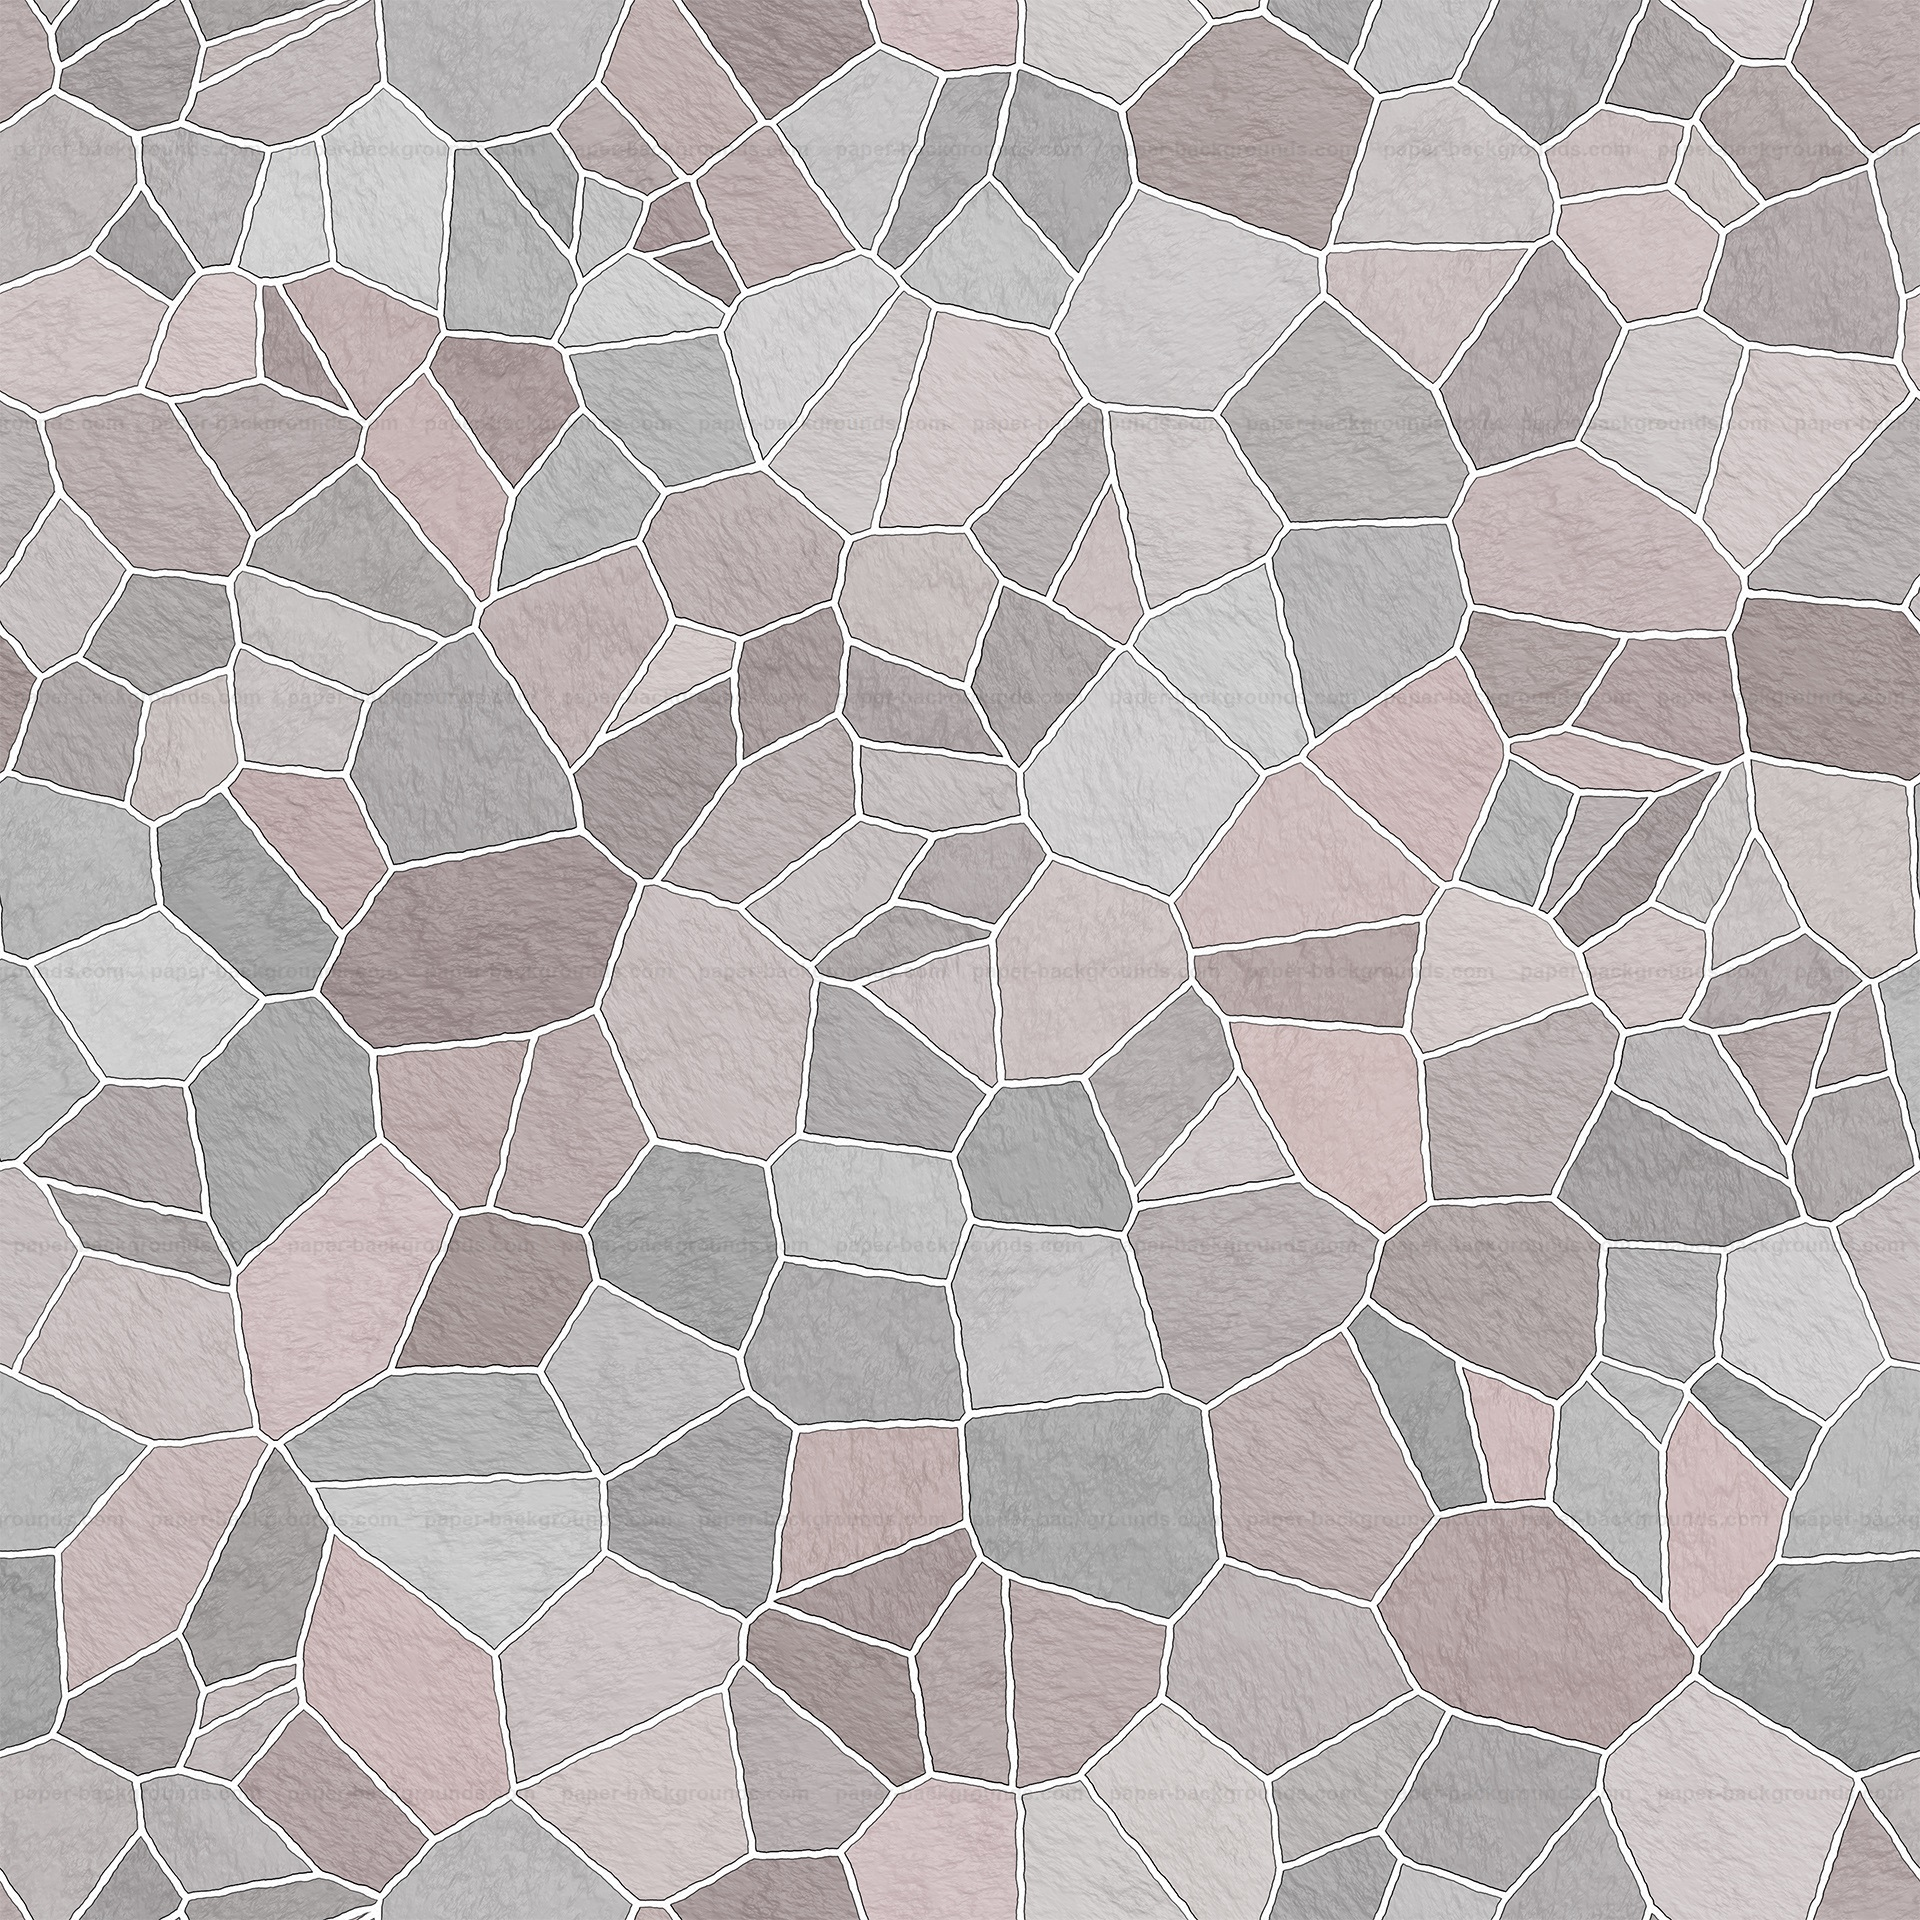 Paper backgrounds seamless textures royalty free hd for Exterior floor tiles texture